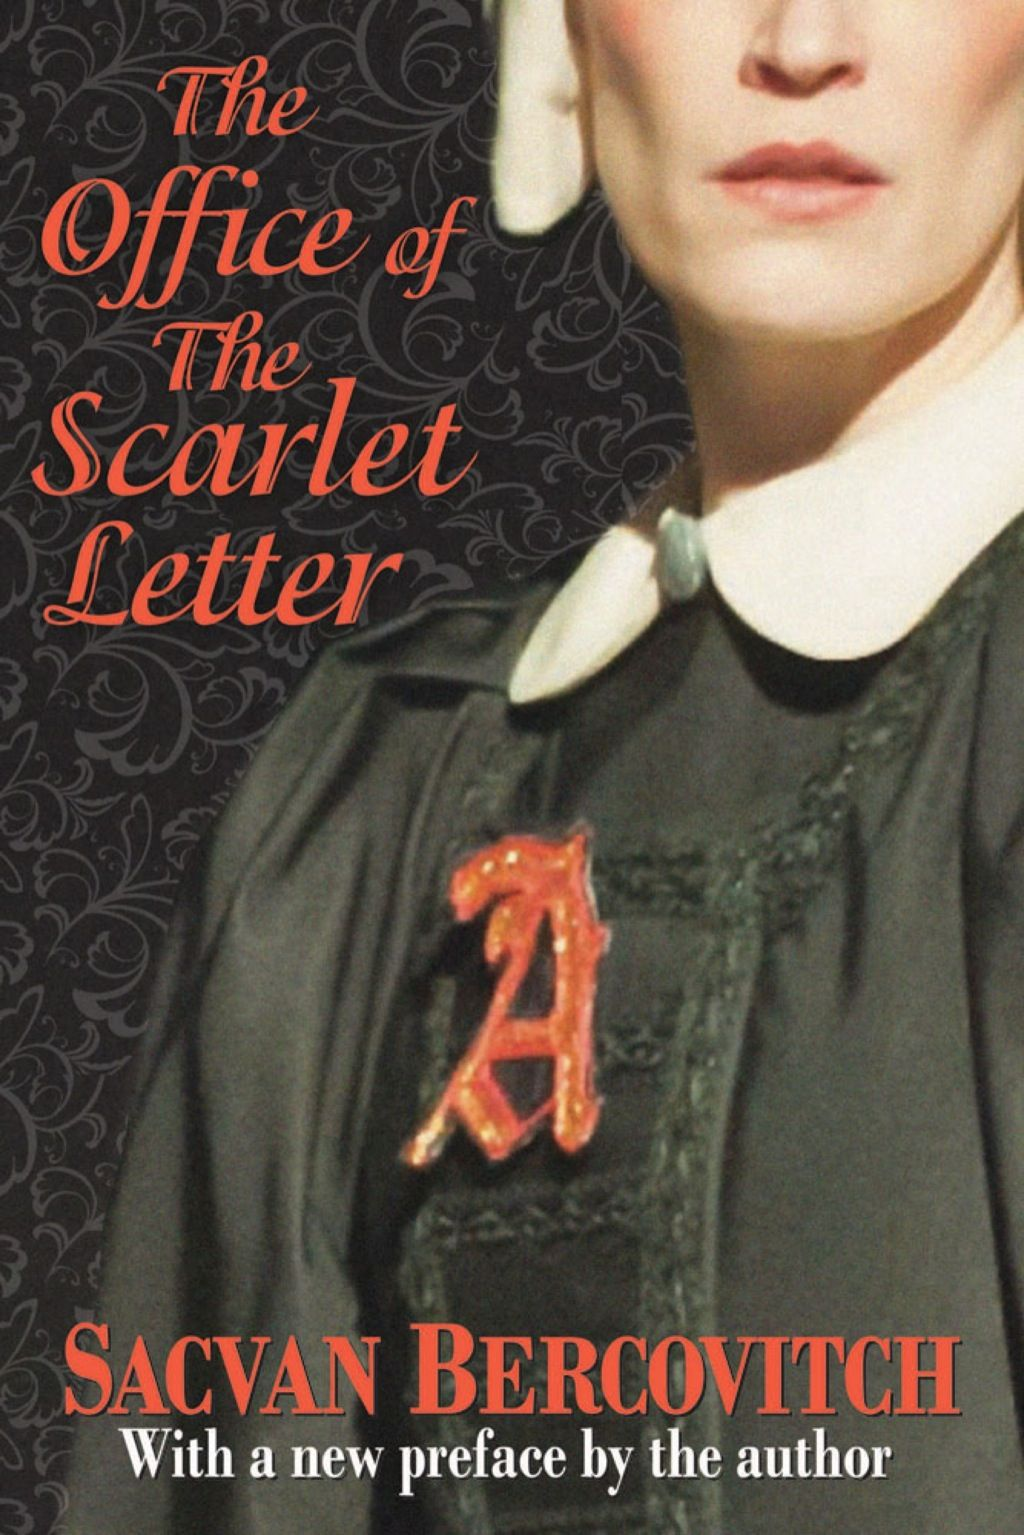 The Office of The Scarlet Letter (eBook) The scarlet